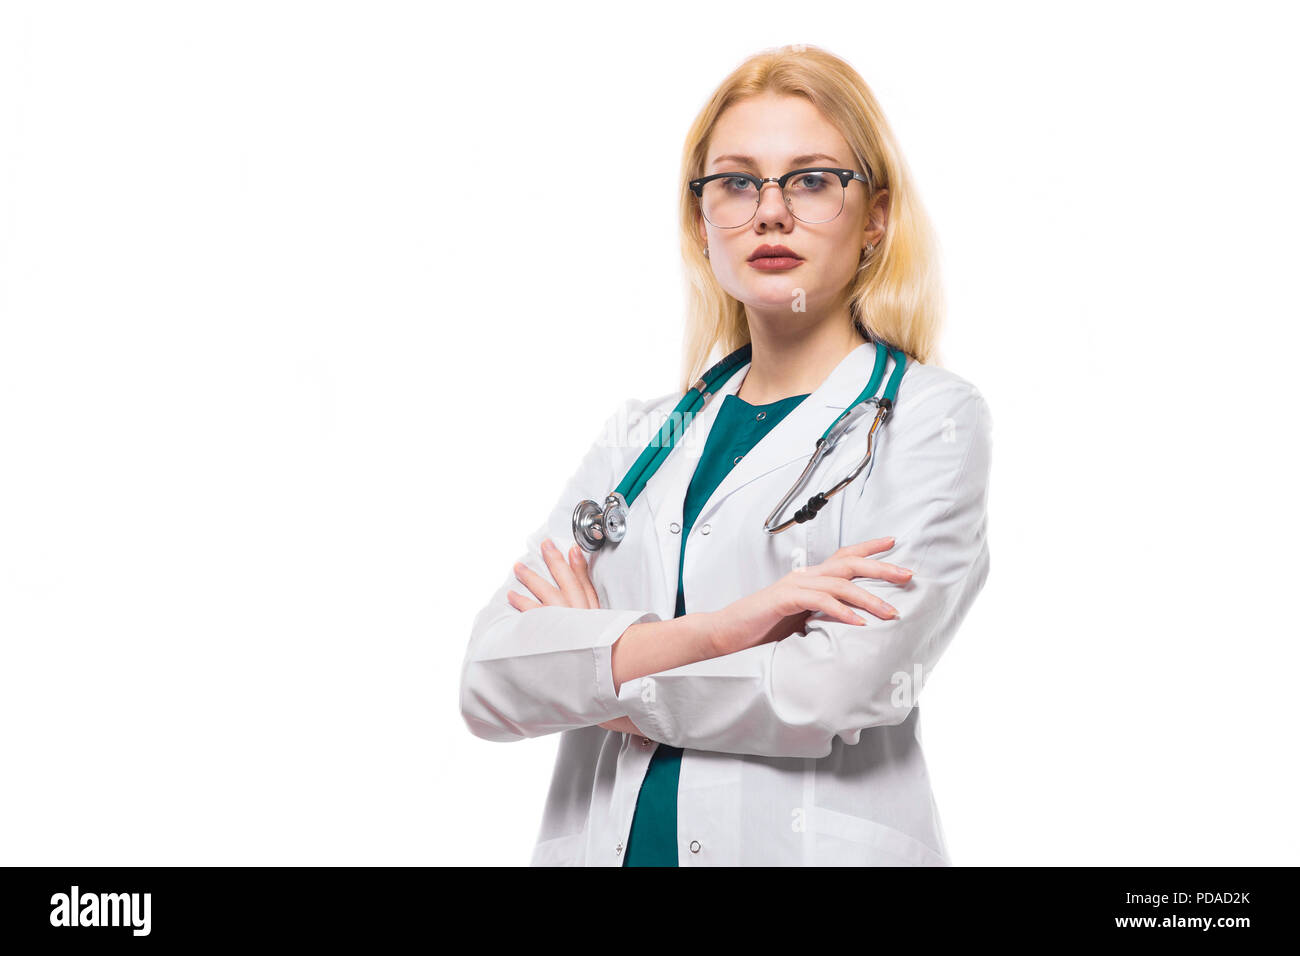 Woman doctor with stethoscope - Stock Image